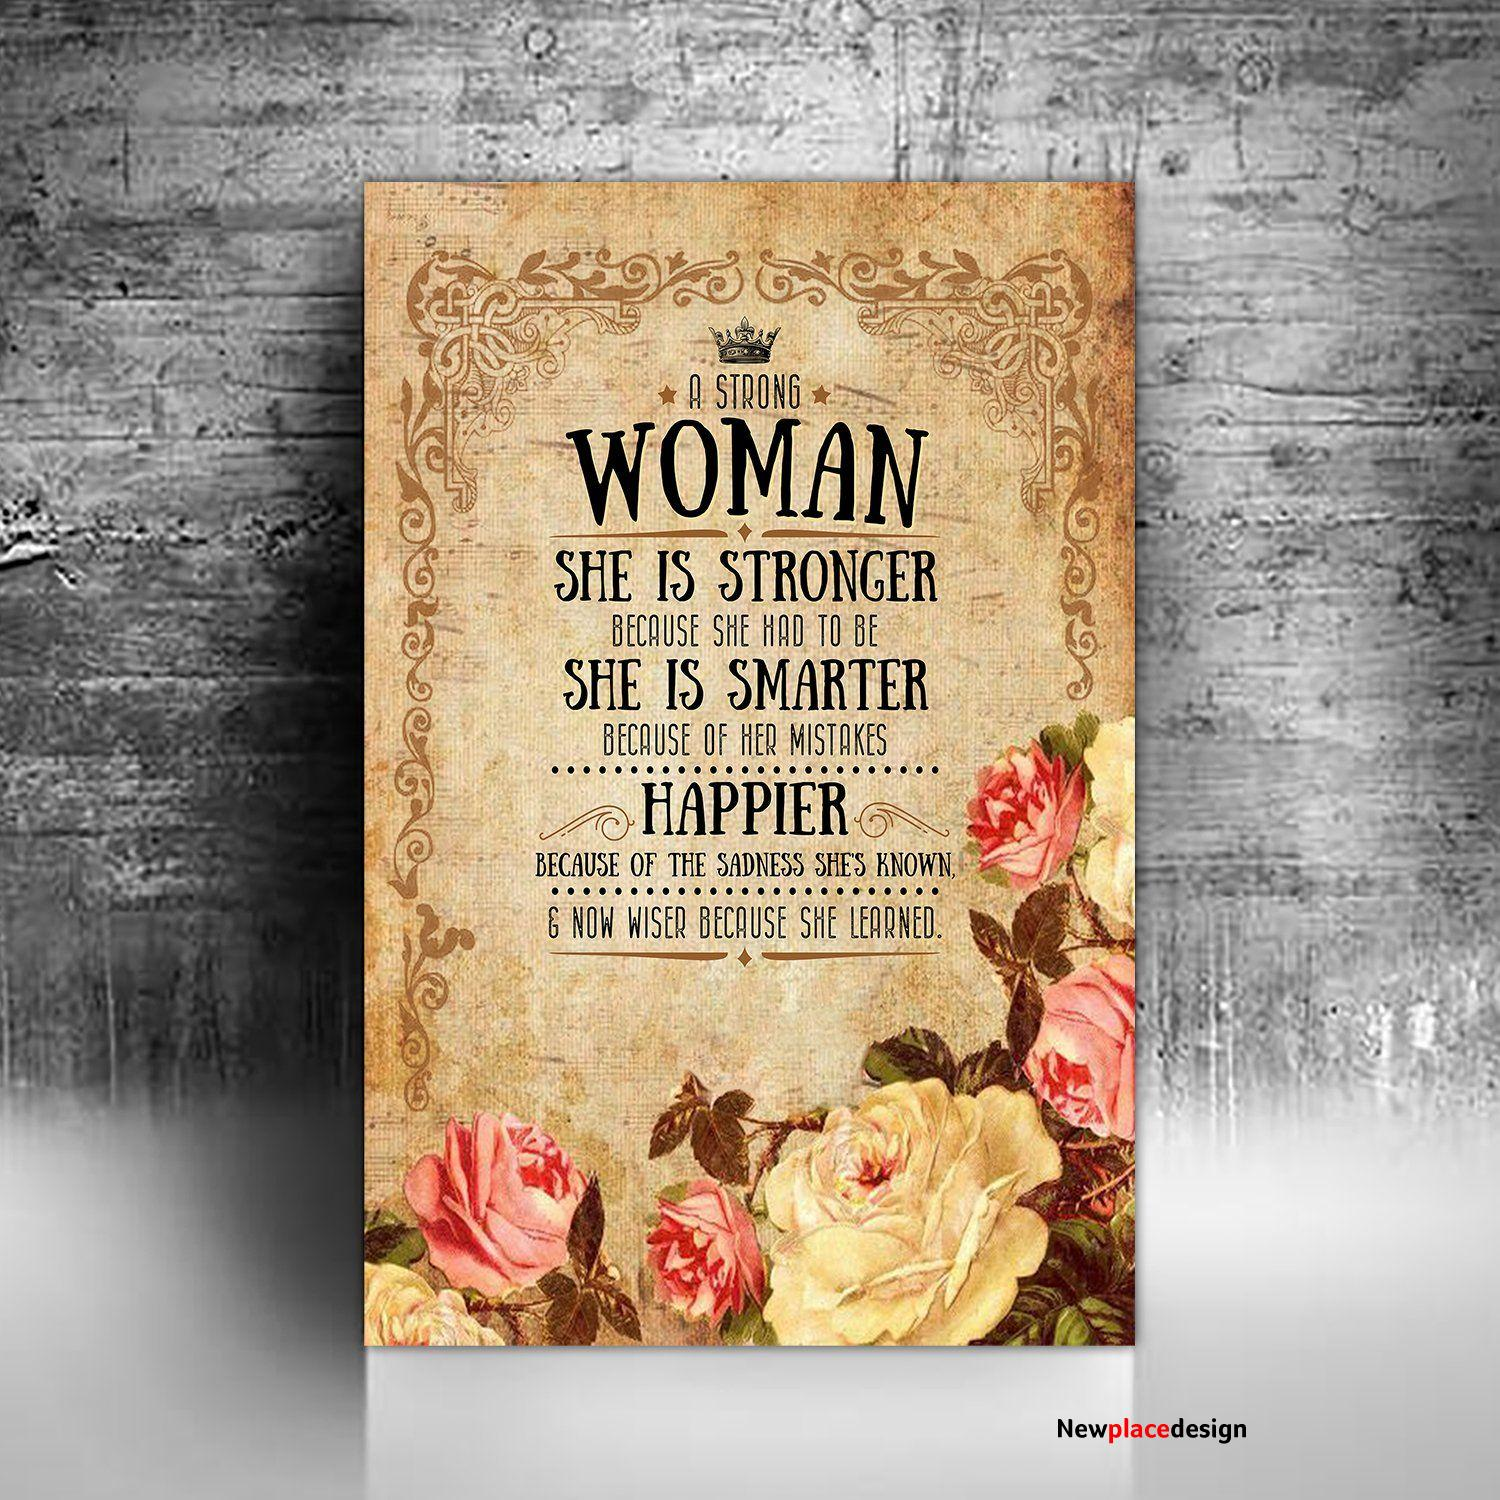 MKTEE Strong Woman Quotes She Is Stronger Canvas Art for Wall Decor Print Painting for Room Decoration - 11x14